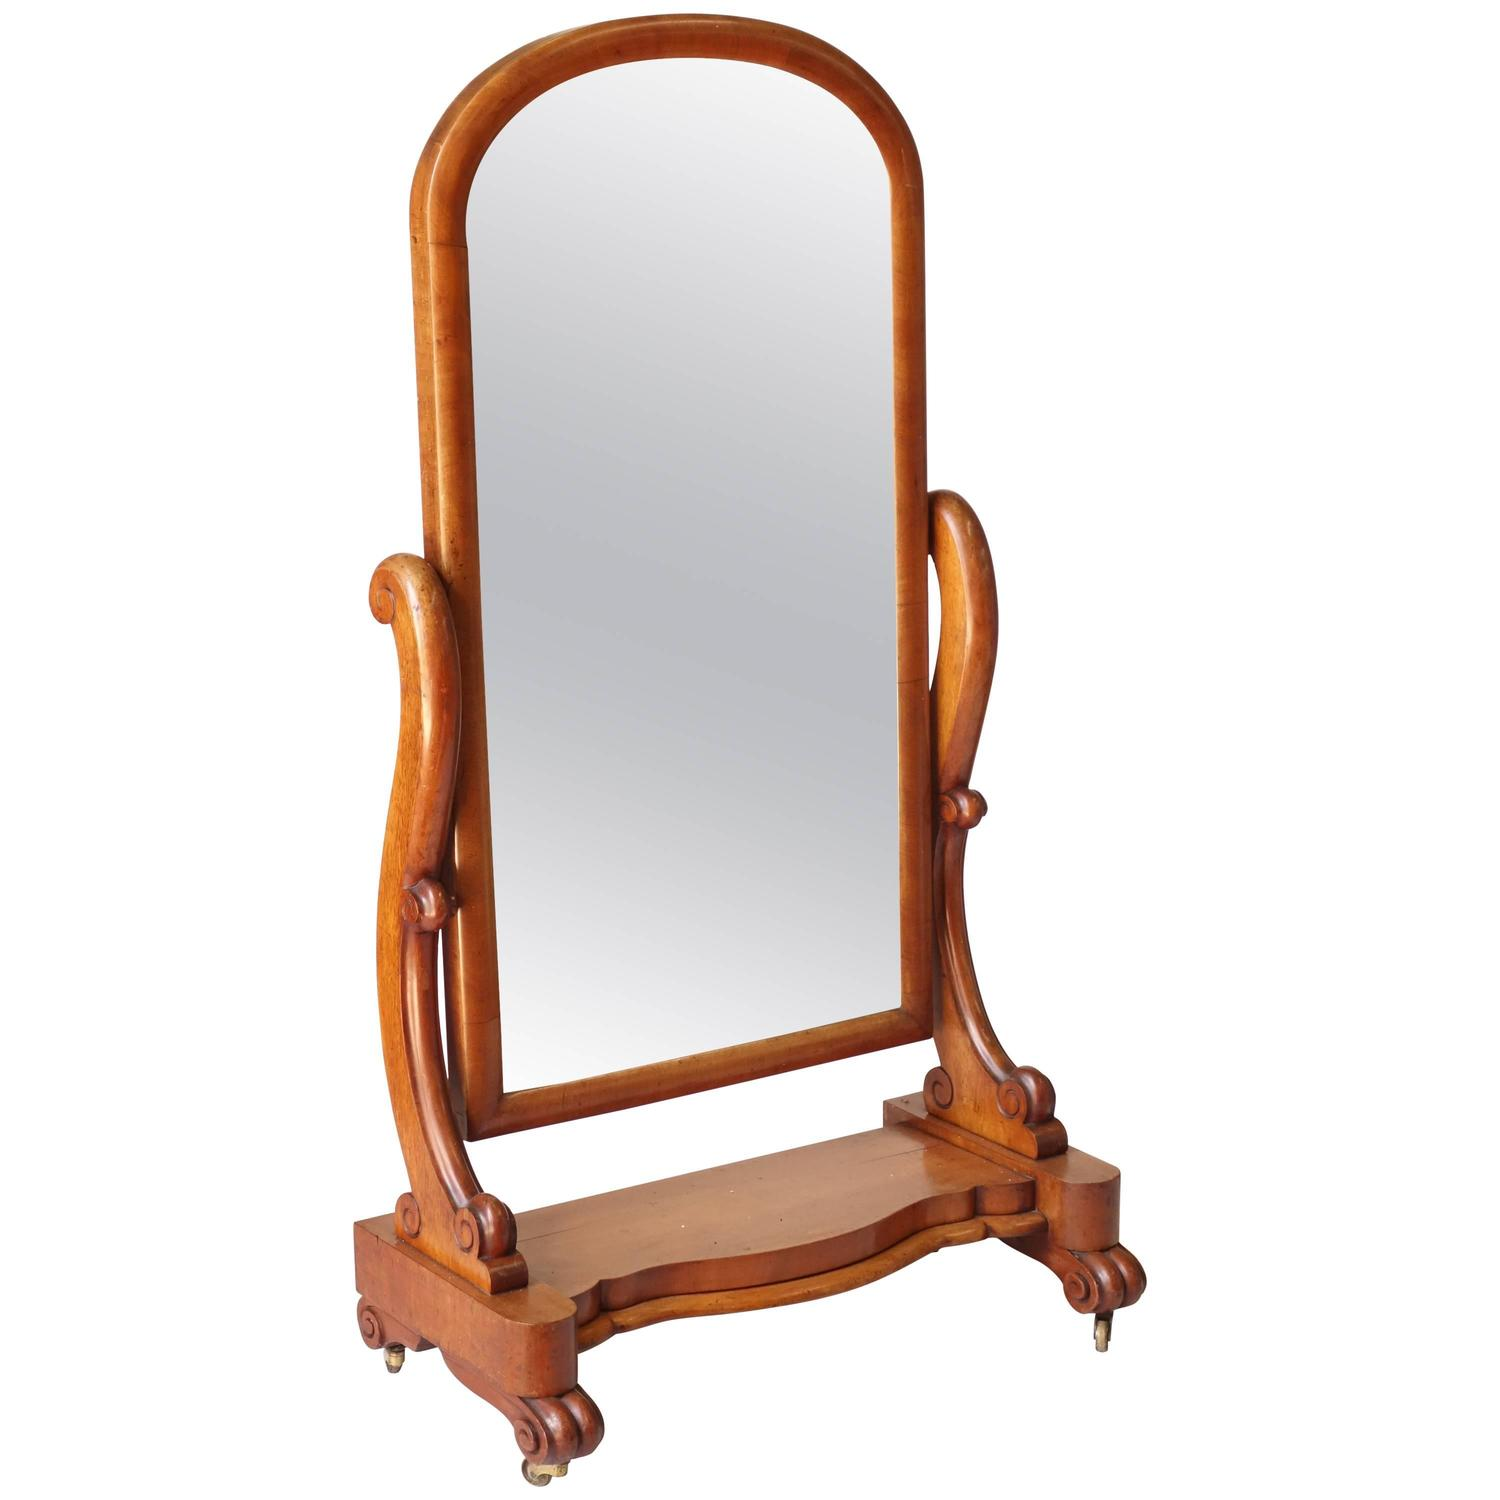 Victorian floor standing mirror for sale at 1stdibs for Victorian mirror